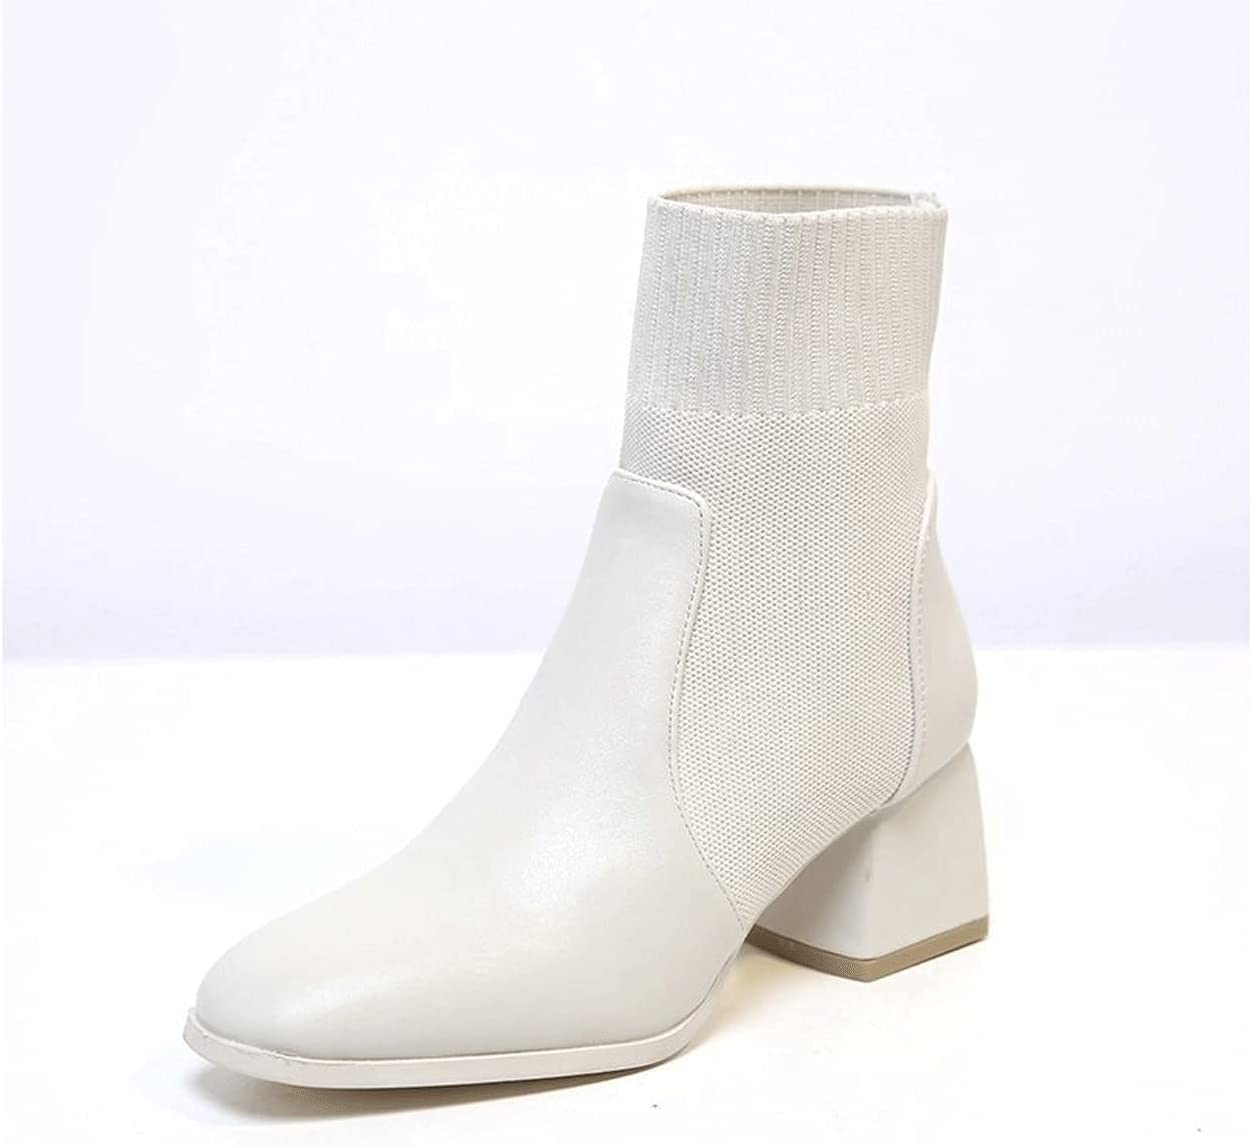 Wangchngqingyx Womens Rain Boots, Comfortable Women's Career Boots for Office Autumn Solid Shoes Woman High Heels Lady Ankle Rain Boot (Color : Beige, Shoe Size : 39)